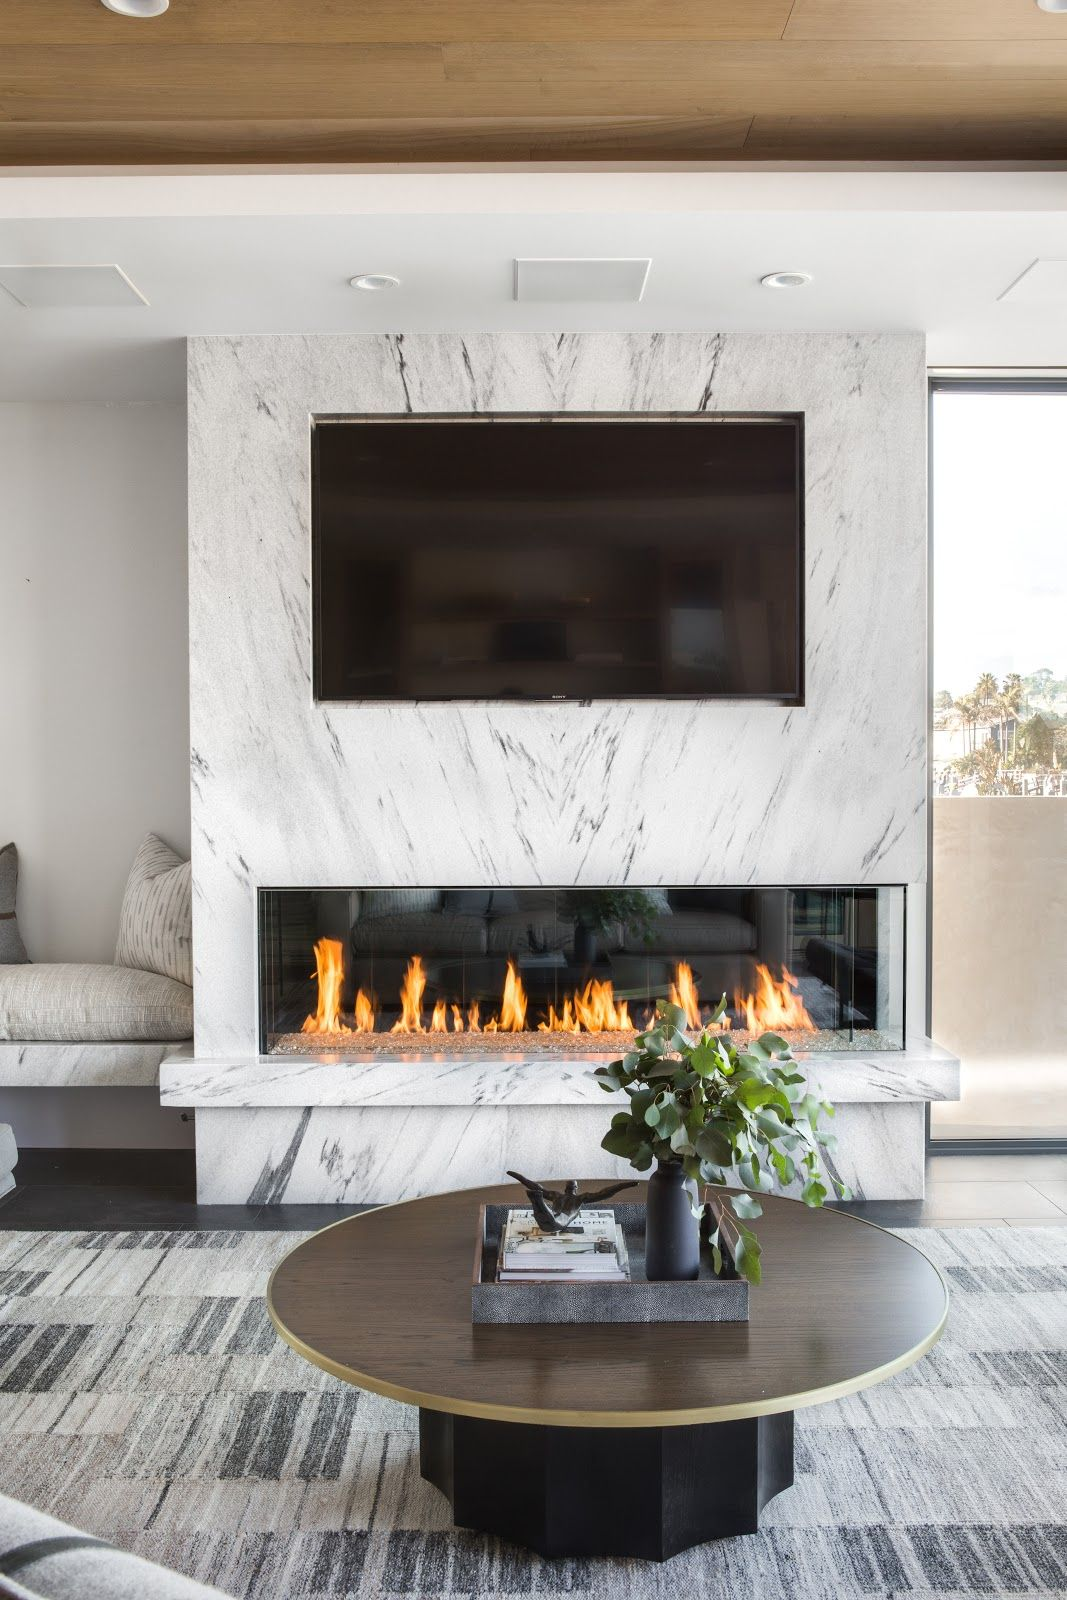 From Backsplash to Hearth This Modern Beach